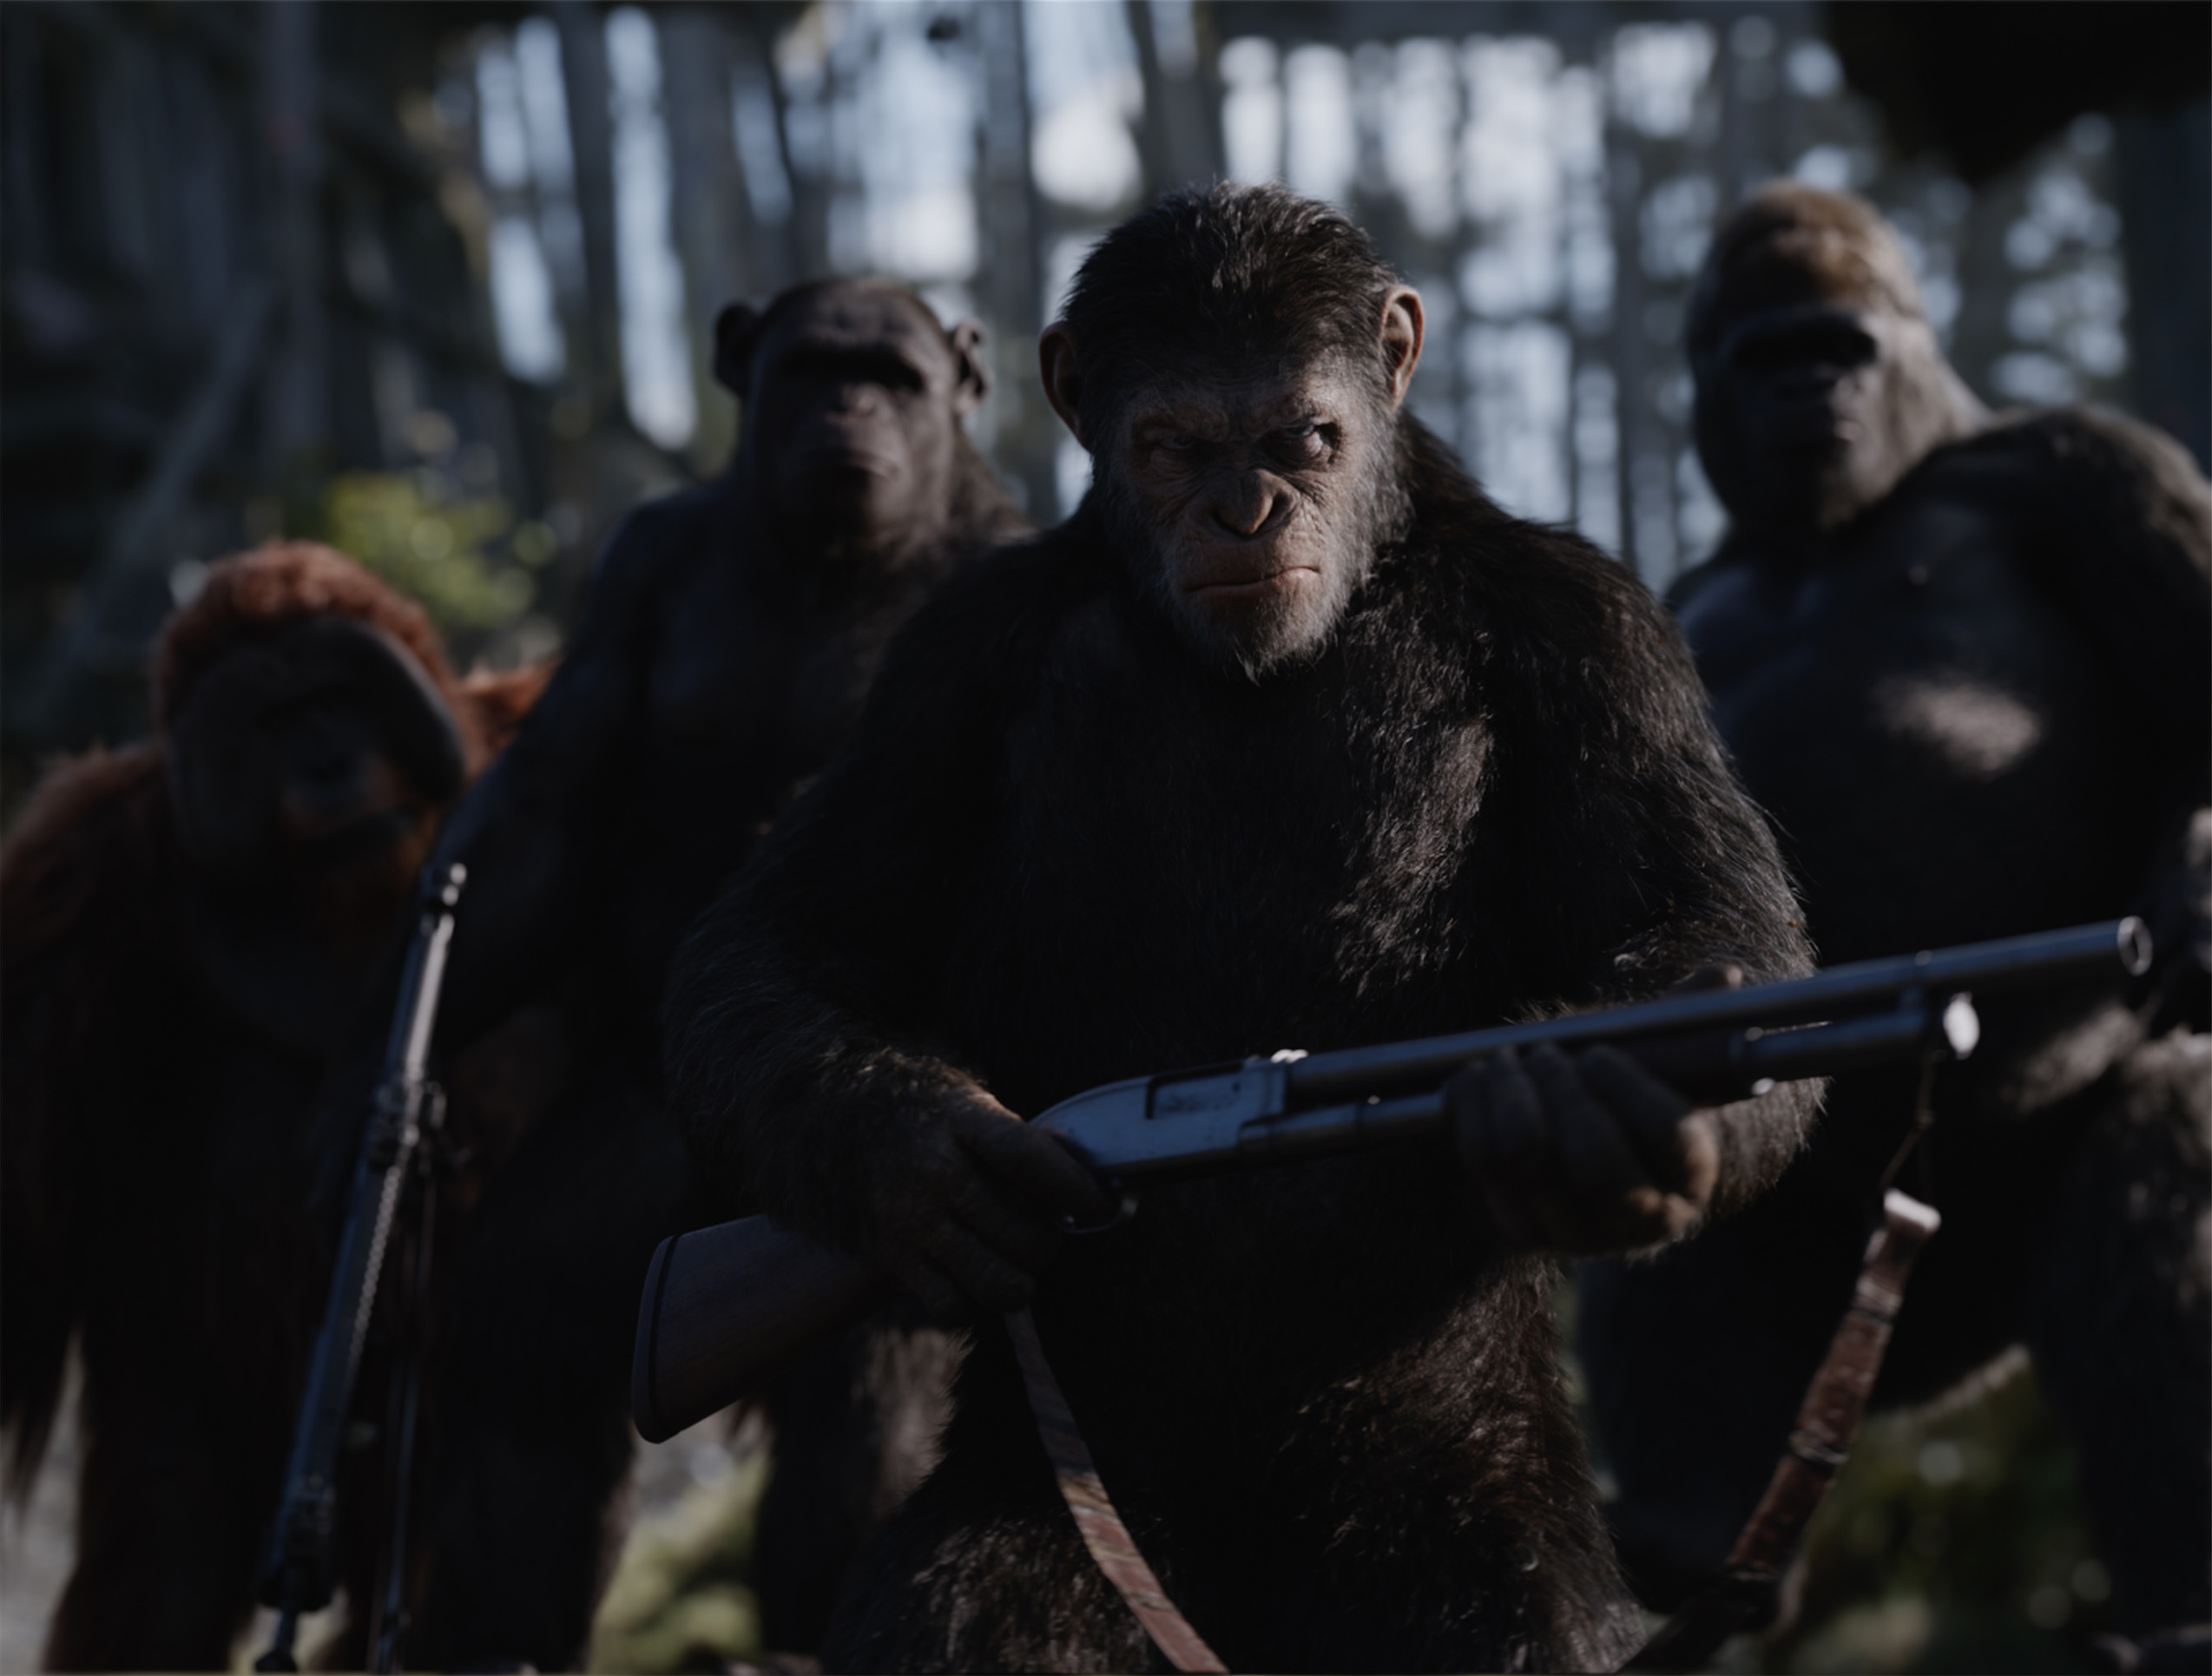 """Andy Serkis plays Simian Caesar in """"War for the Planet of the Apes."""" (Courtesy 20th Century Fox)"""